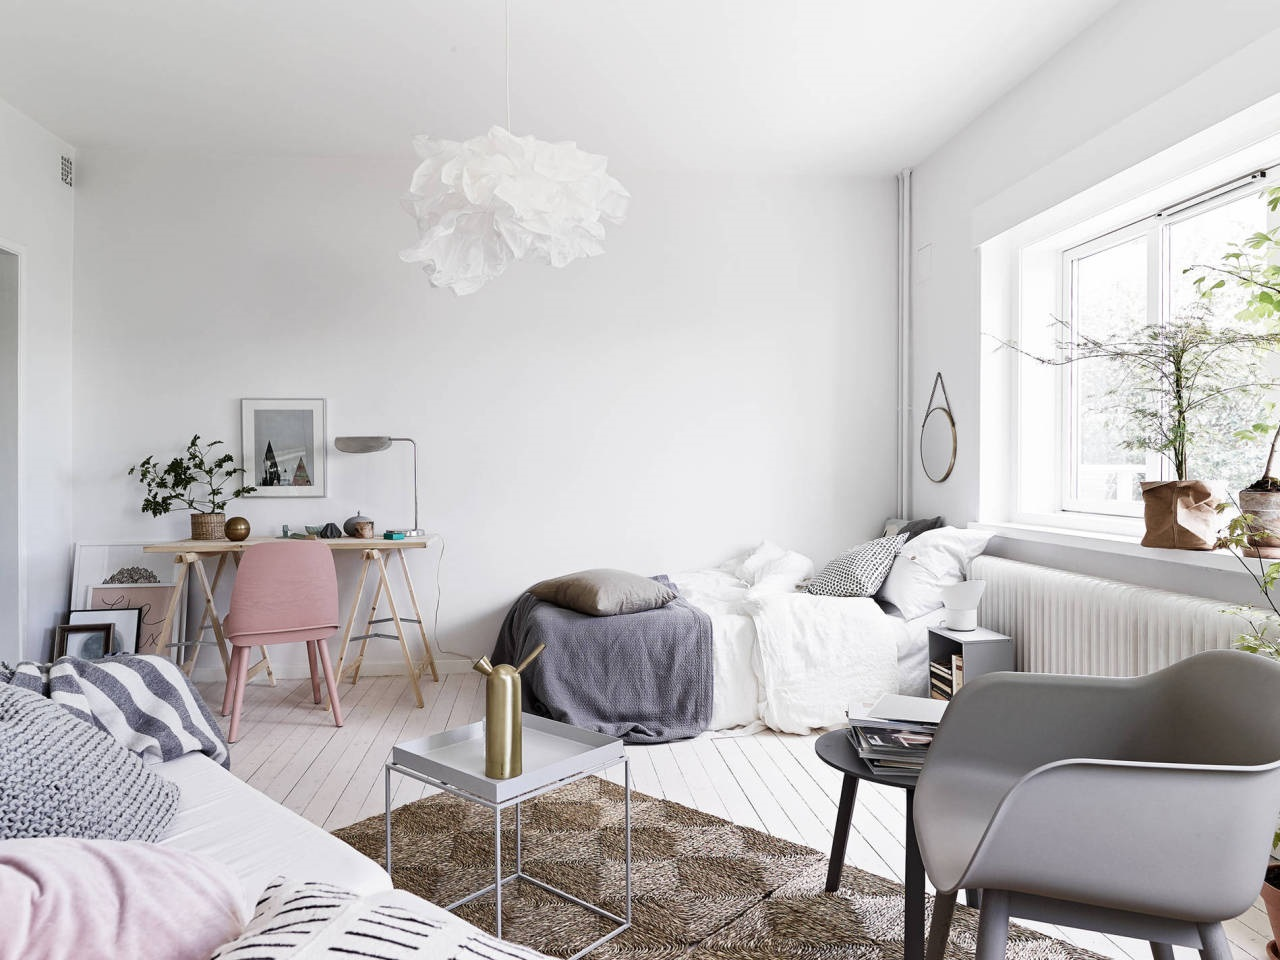 an airy Scandinavian studio apartment done in neutrals and with pastels and some prints for an airy look